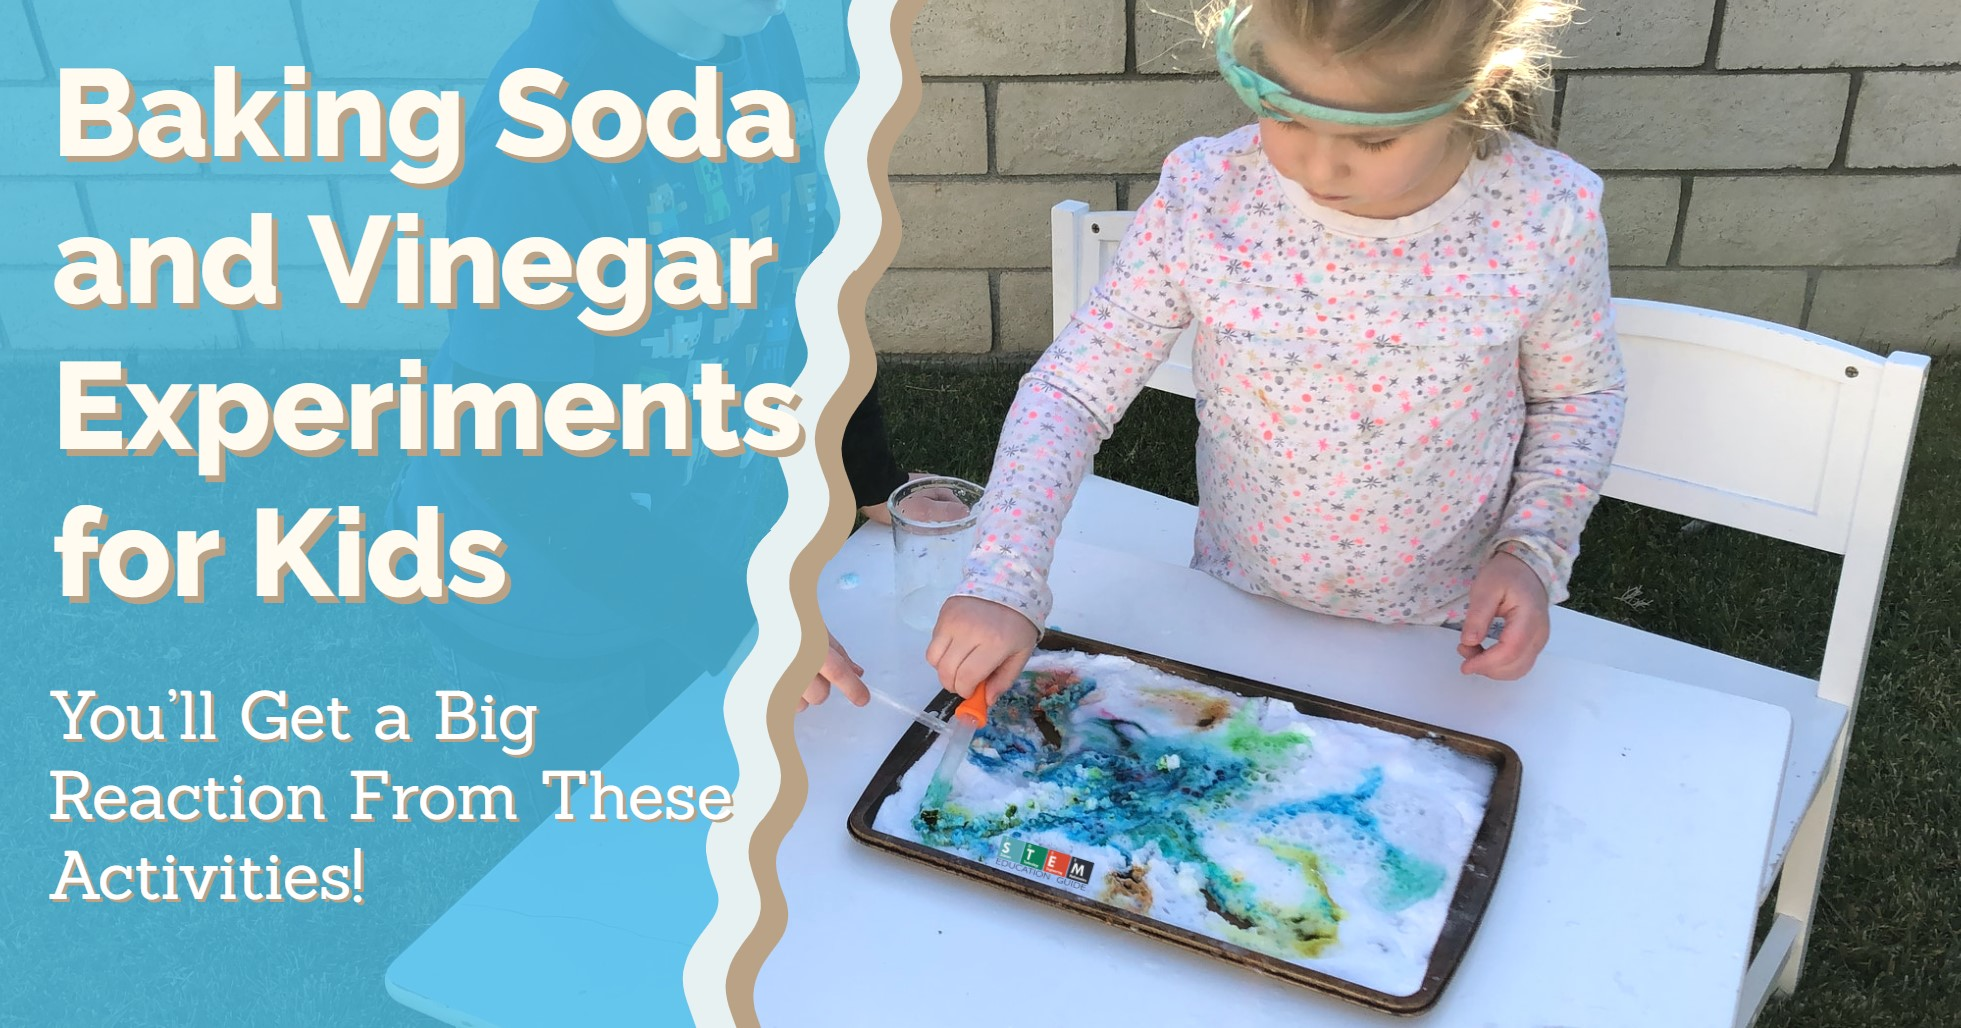 Baking Soda and Vinegar Chemistry Experiments for Kids